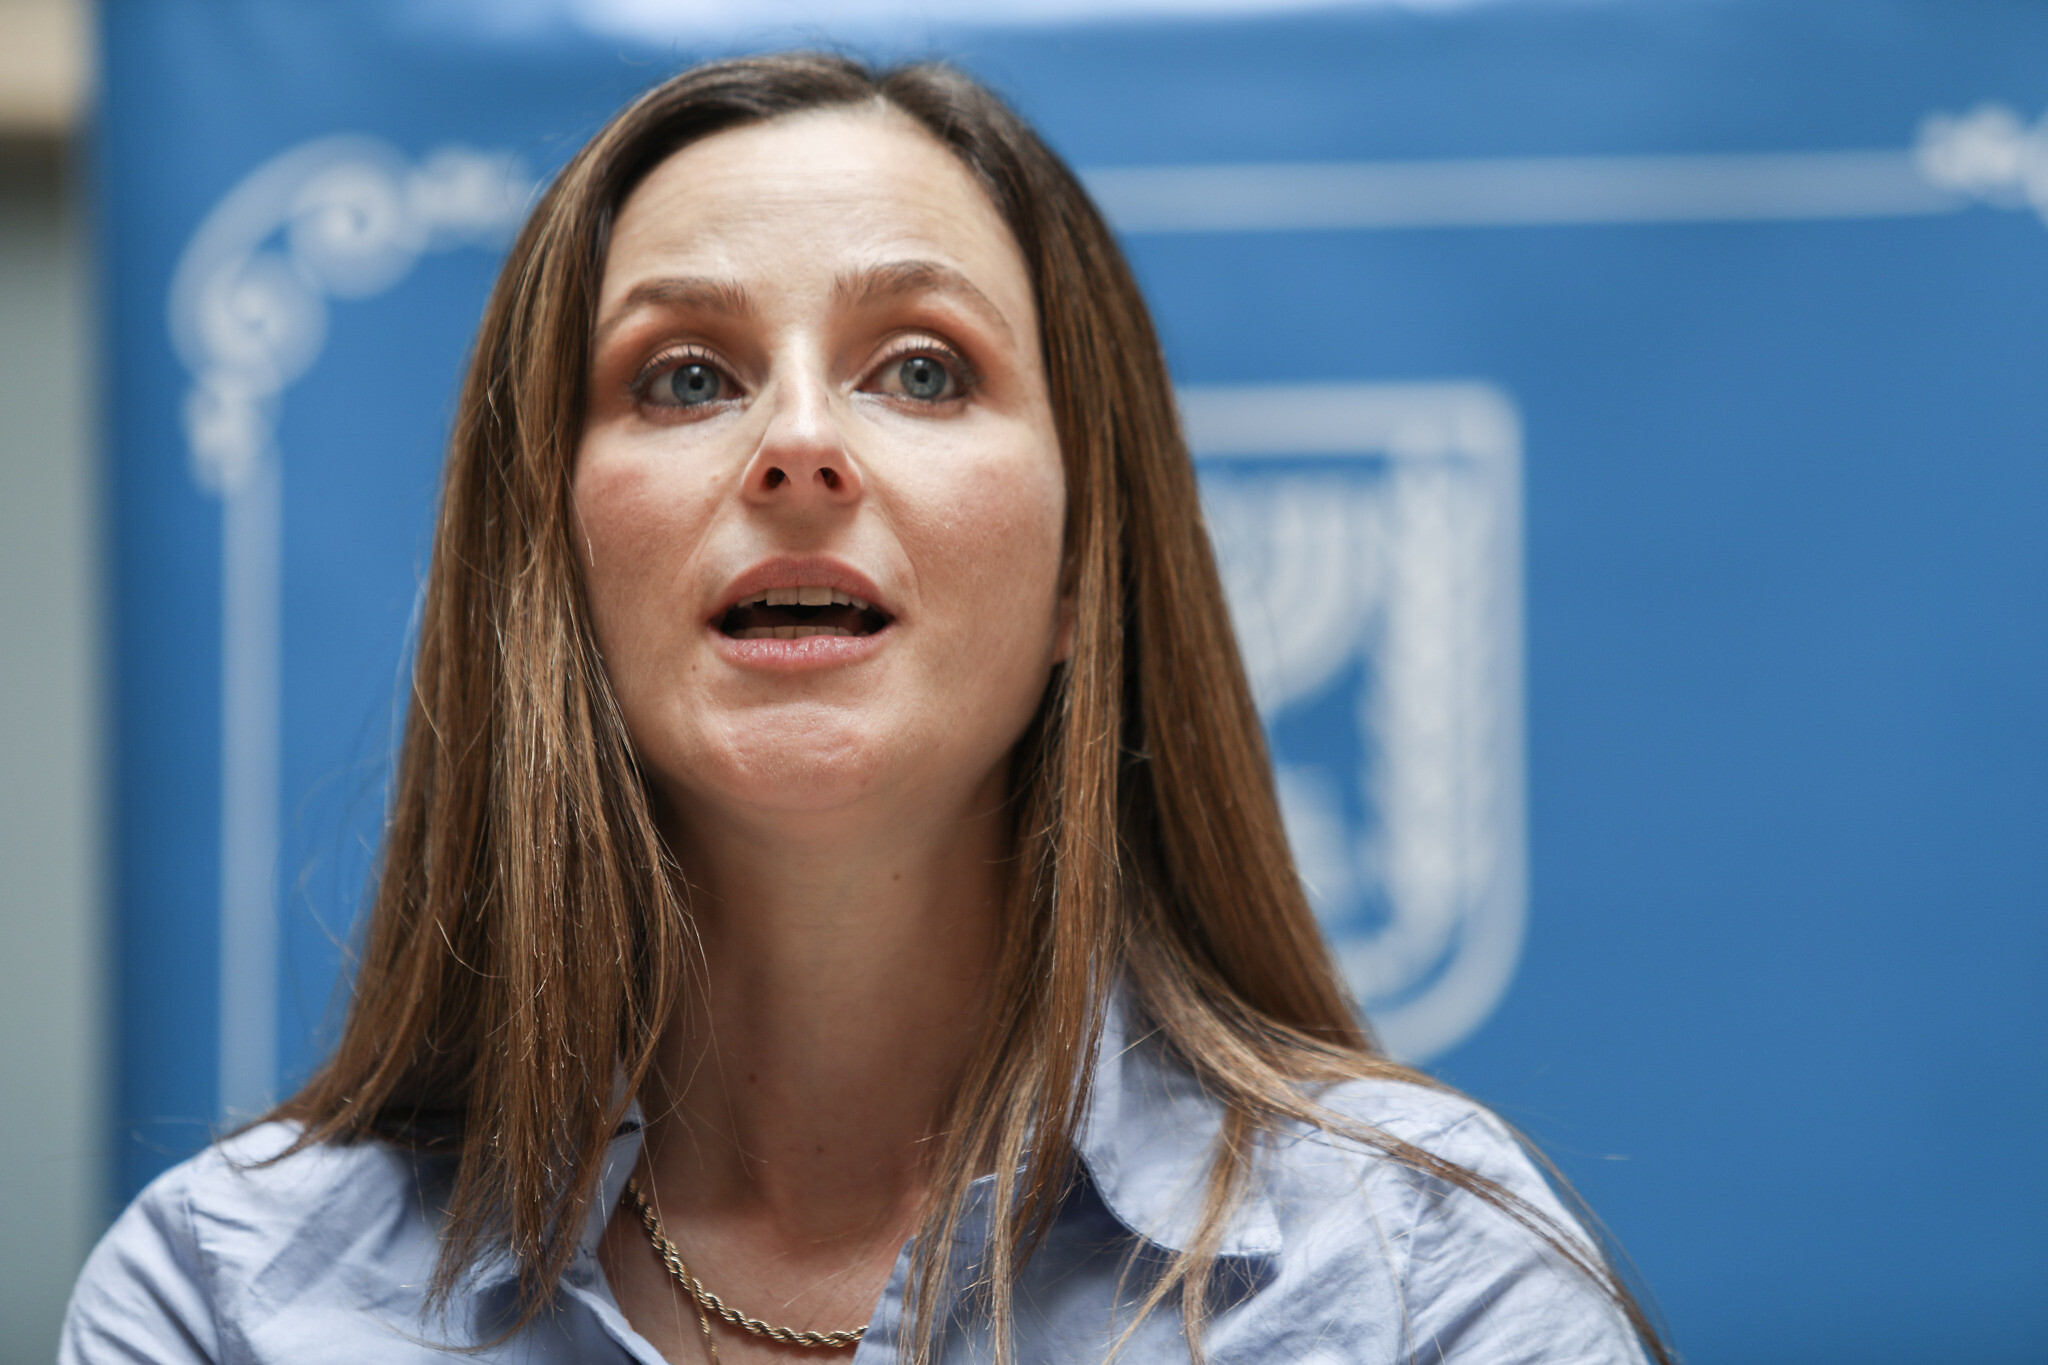 Days after entering office, new social equality minister gives birth | The  Times of Israel